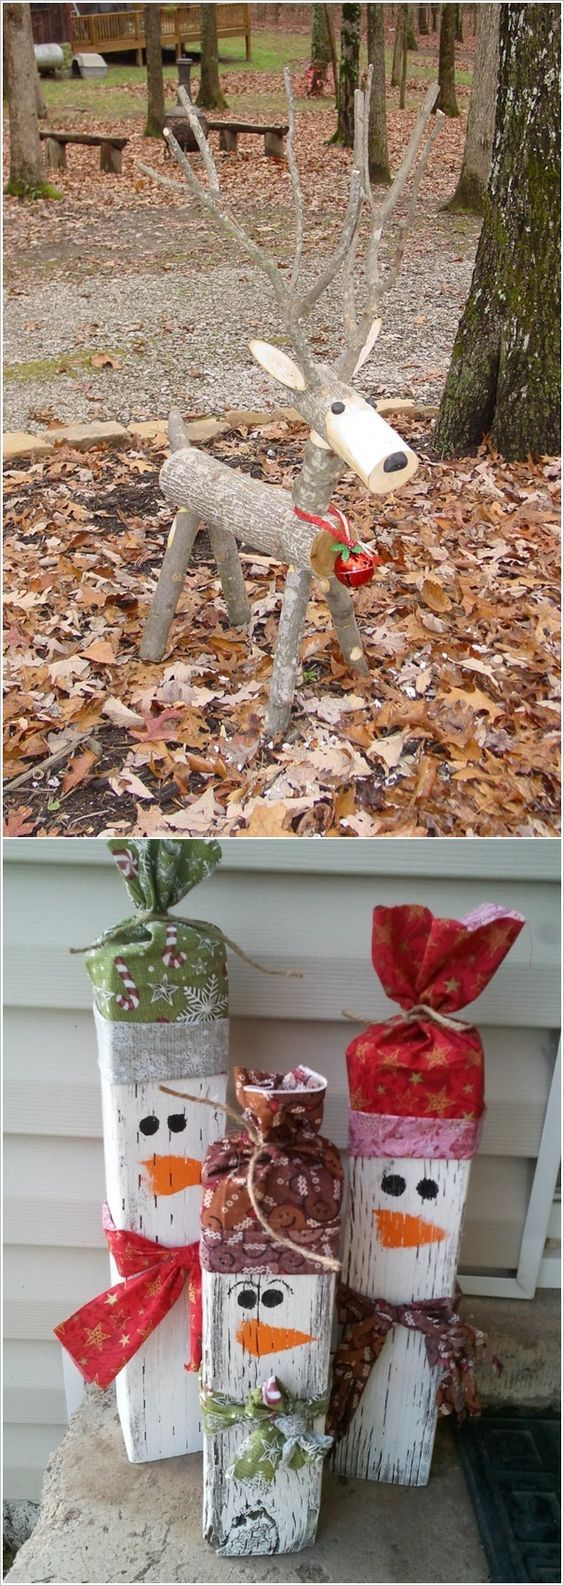 20 Beautiful Rustic Ideas for Christmas Decorations: 10. Wooden Christmas Decorations